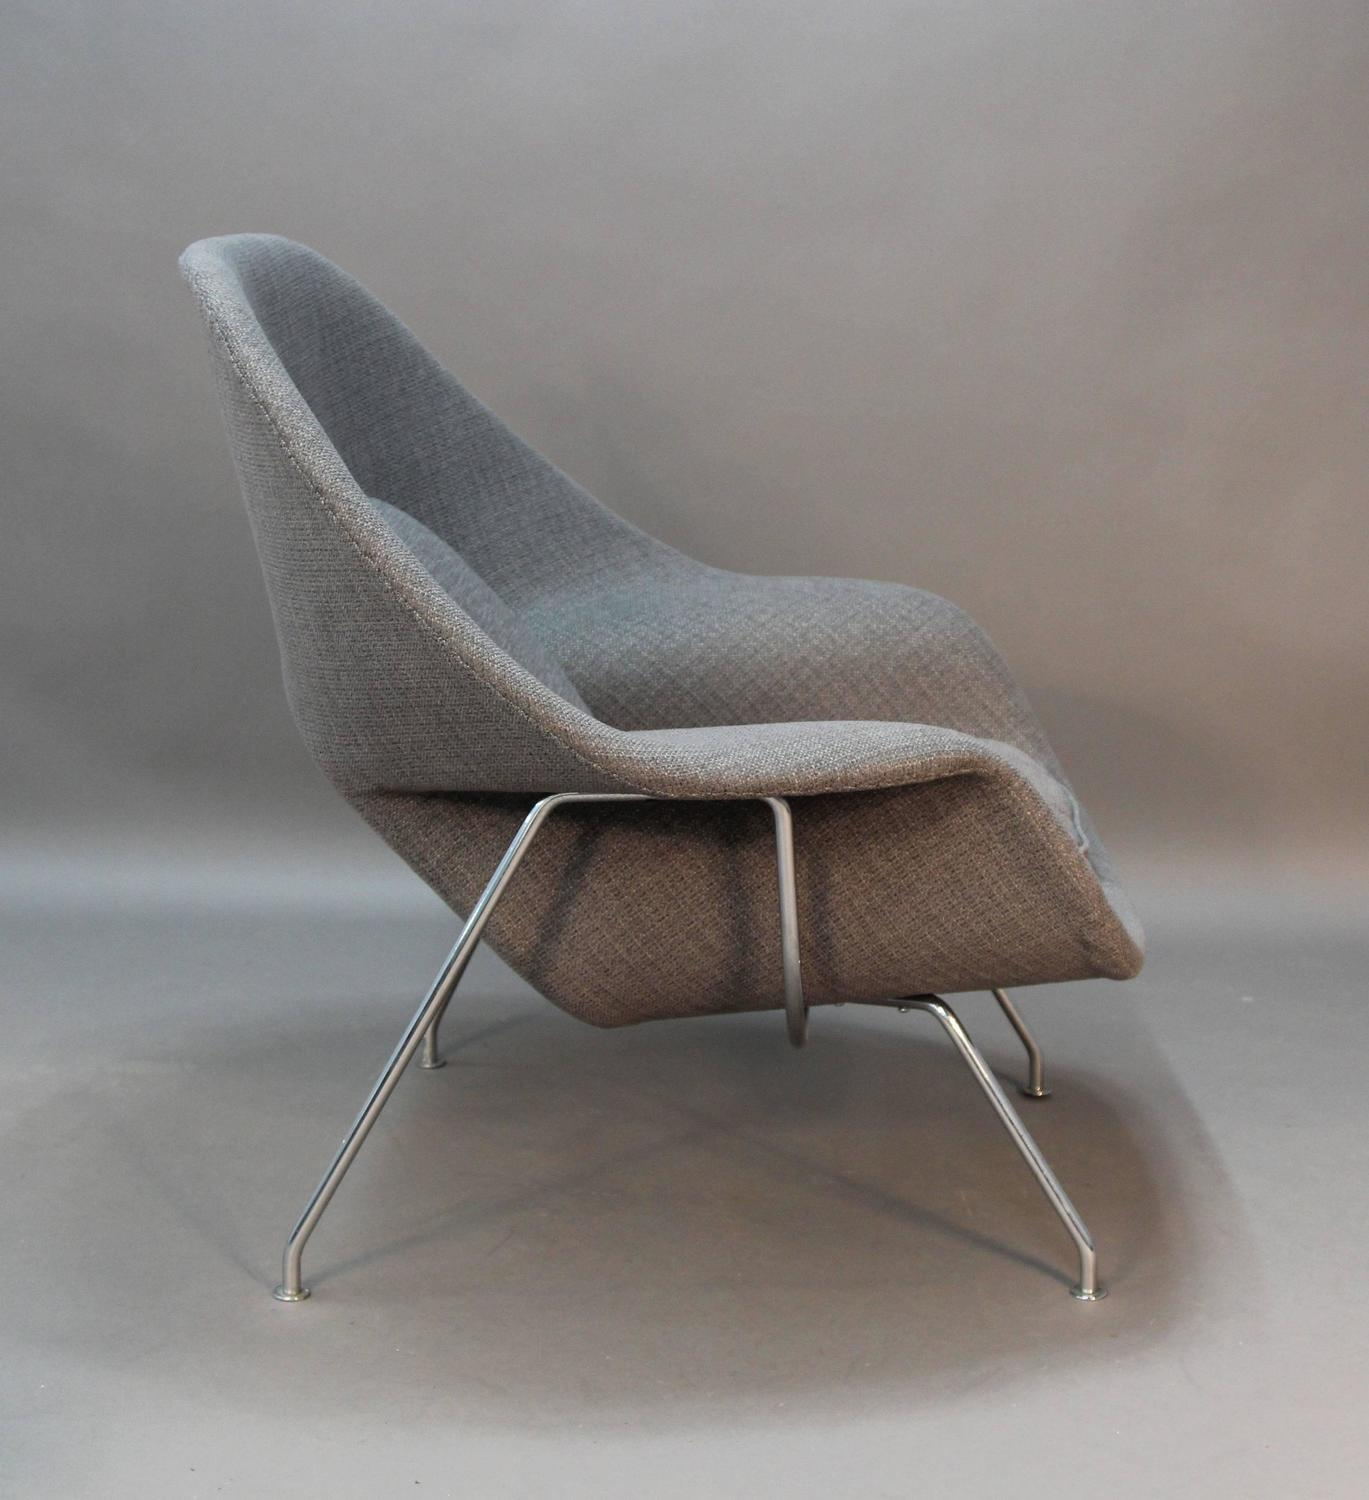 Womb chair and ottoman sale womb chair clearance sale womb chair chair womb saarinen leather - Vintage womb chair for sale ...